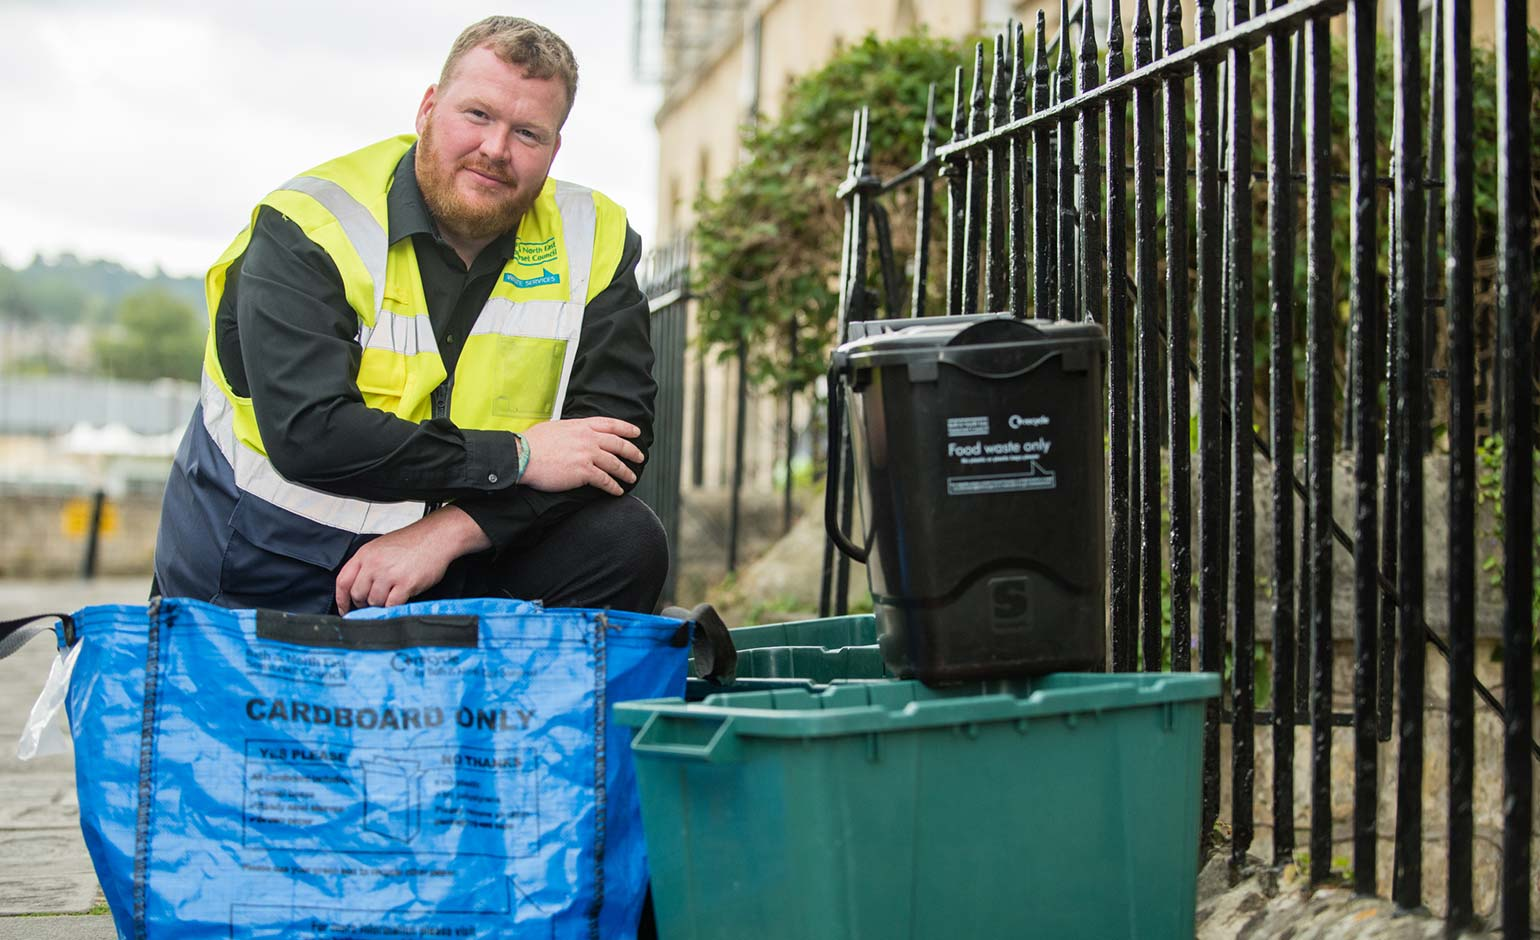 Local flats to be given kitchen caddies ahead of food waste collection rollout | Bath Echo